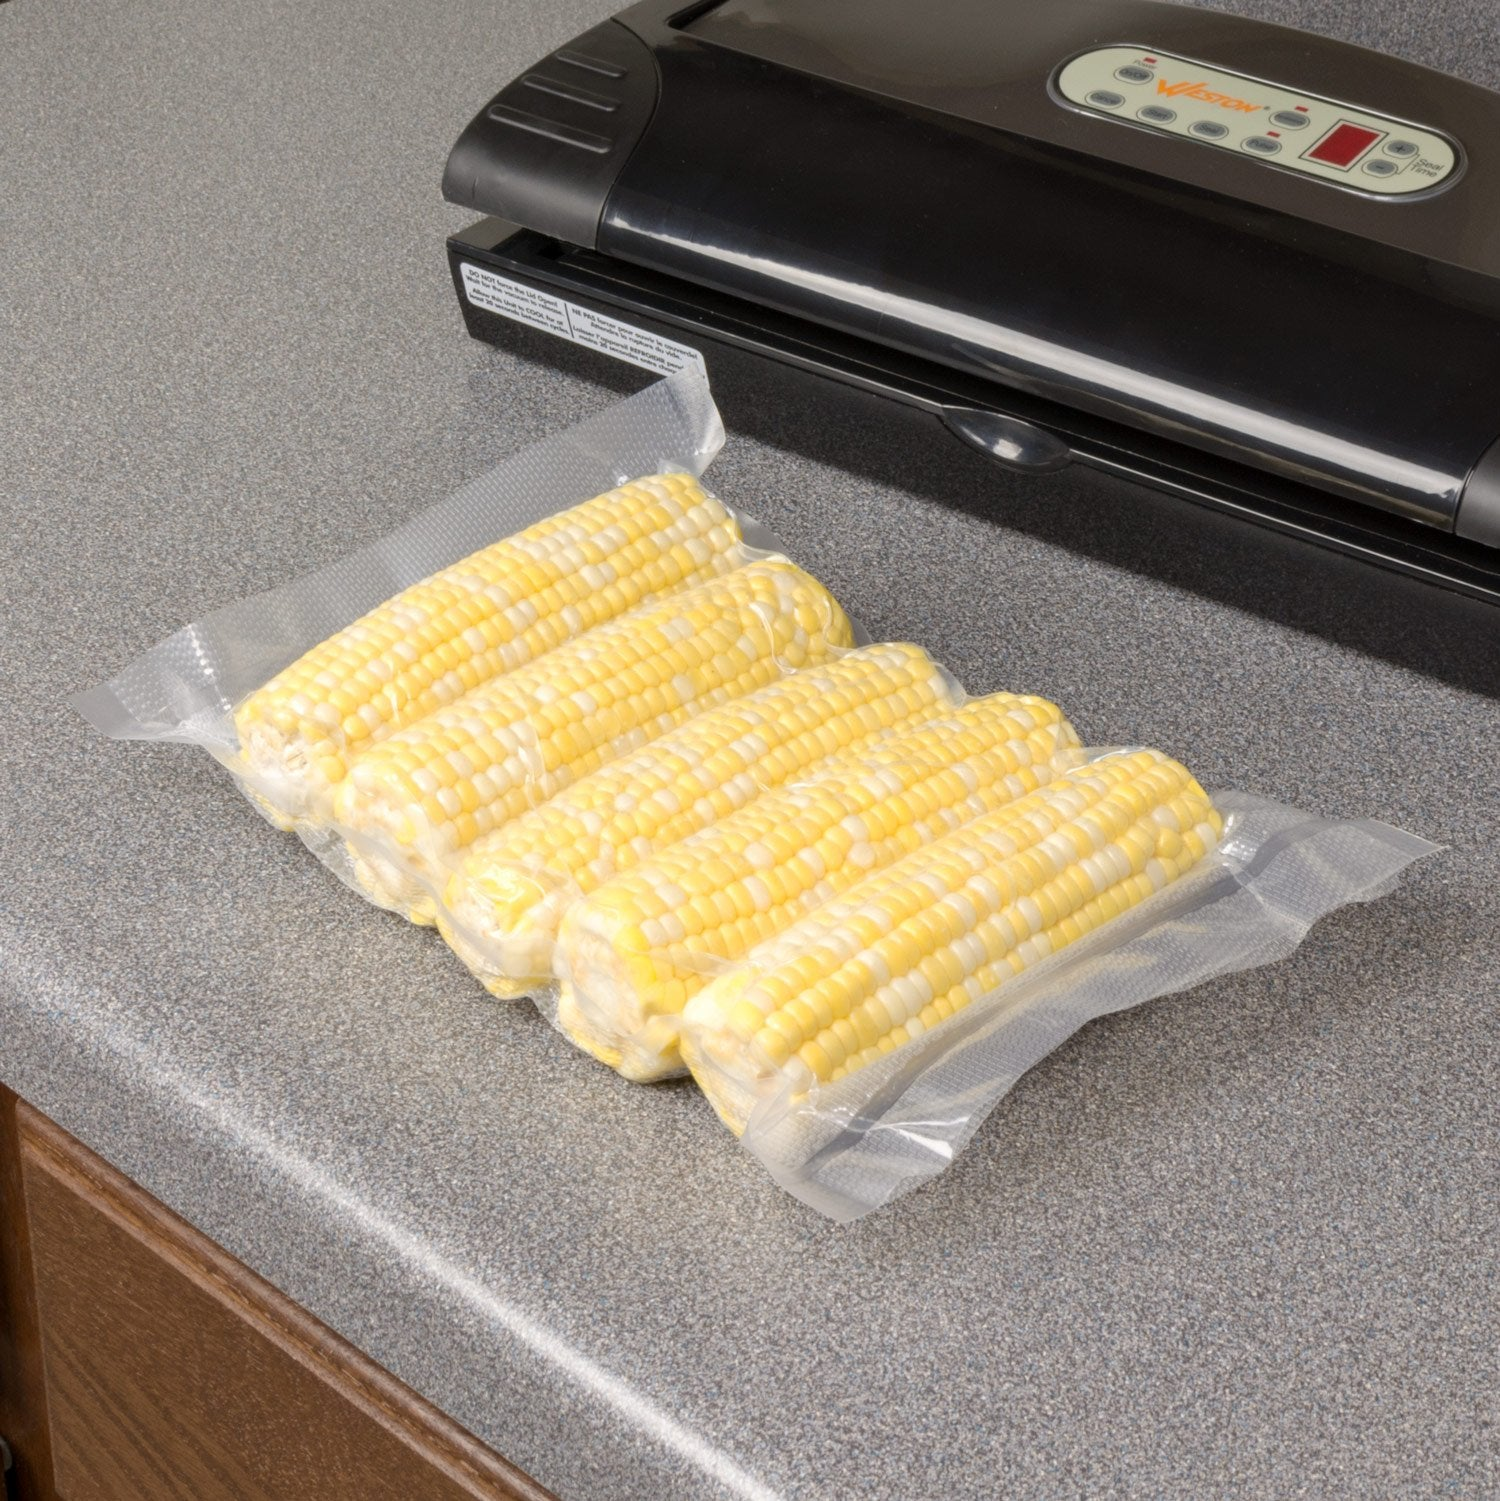 Vacuum Seal to preserve food for longer